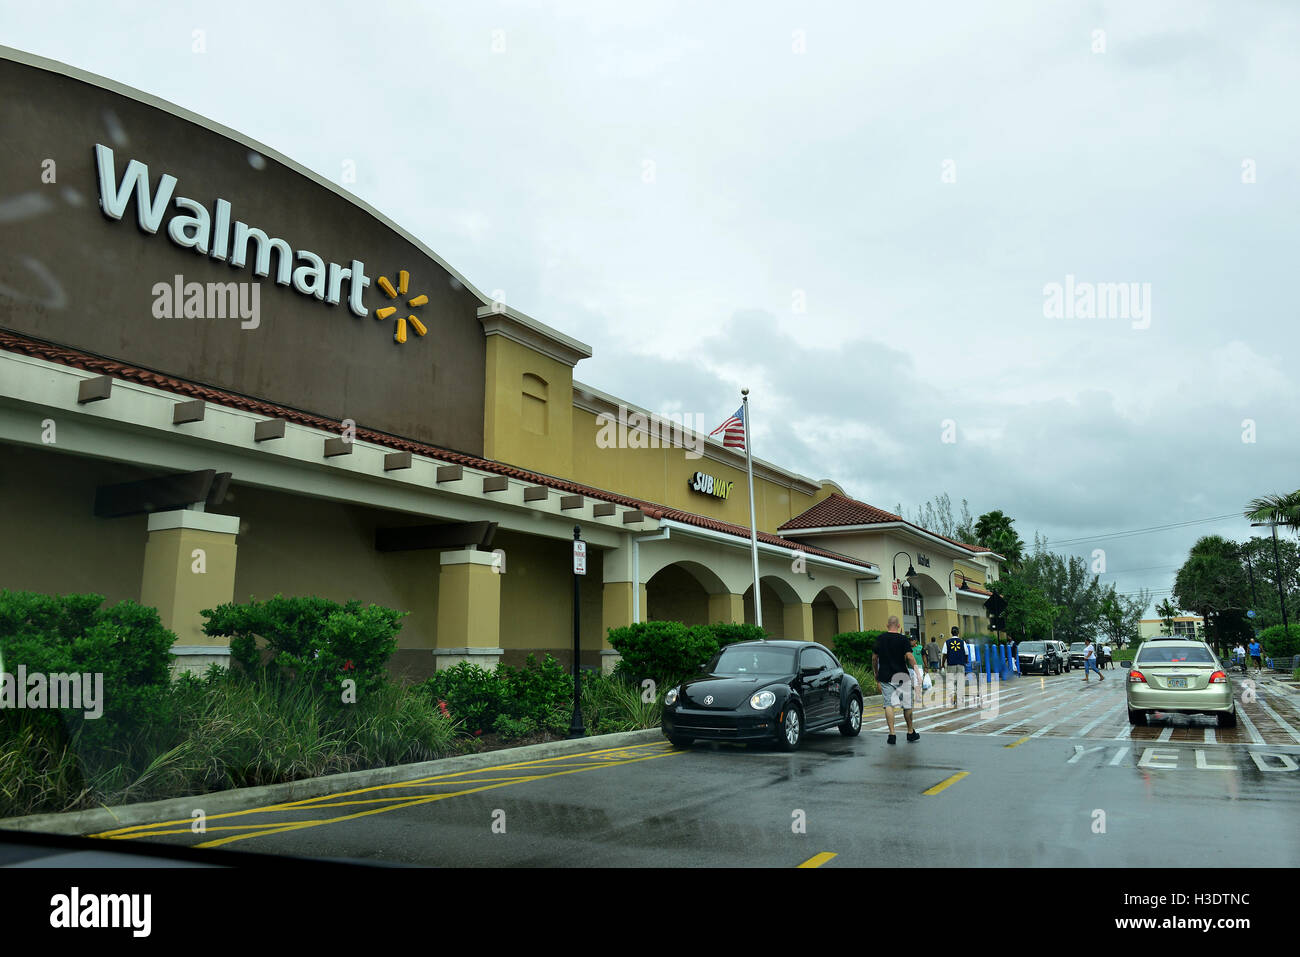 MIRAMAR, FL - OCTOBER 06:Customer arriving at Walmart as Hurricane Matthew approaches the area on October 6, 2015 Stock Photo